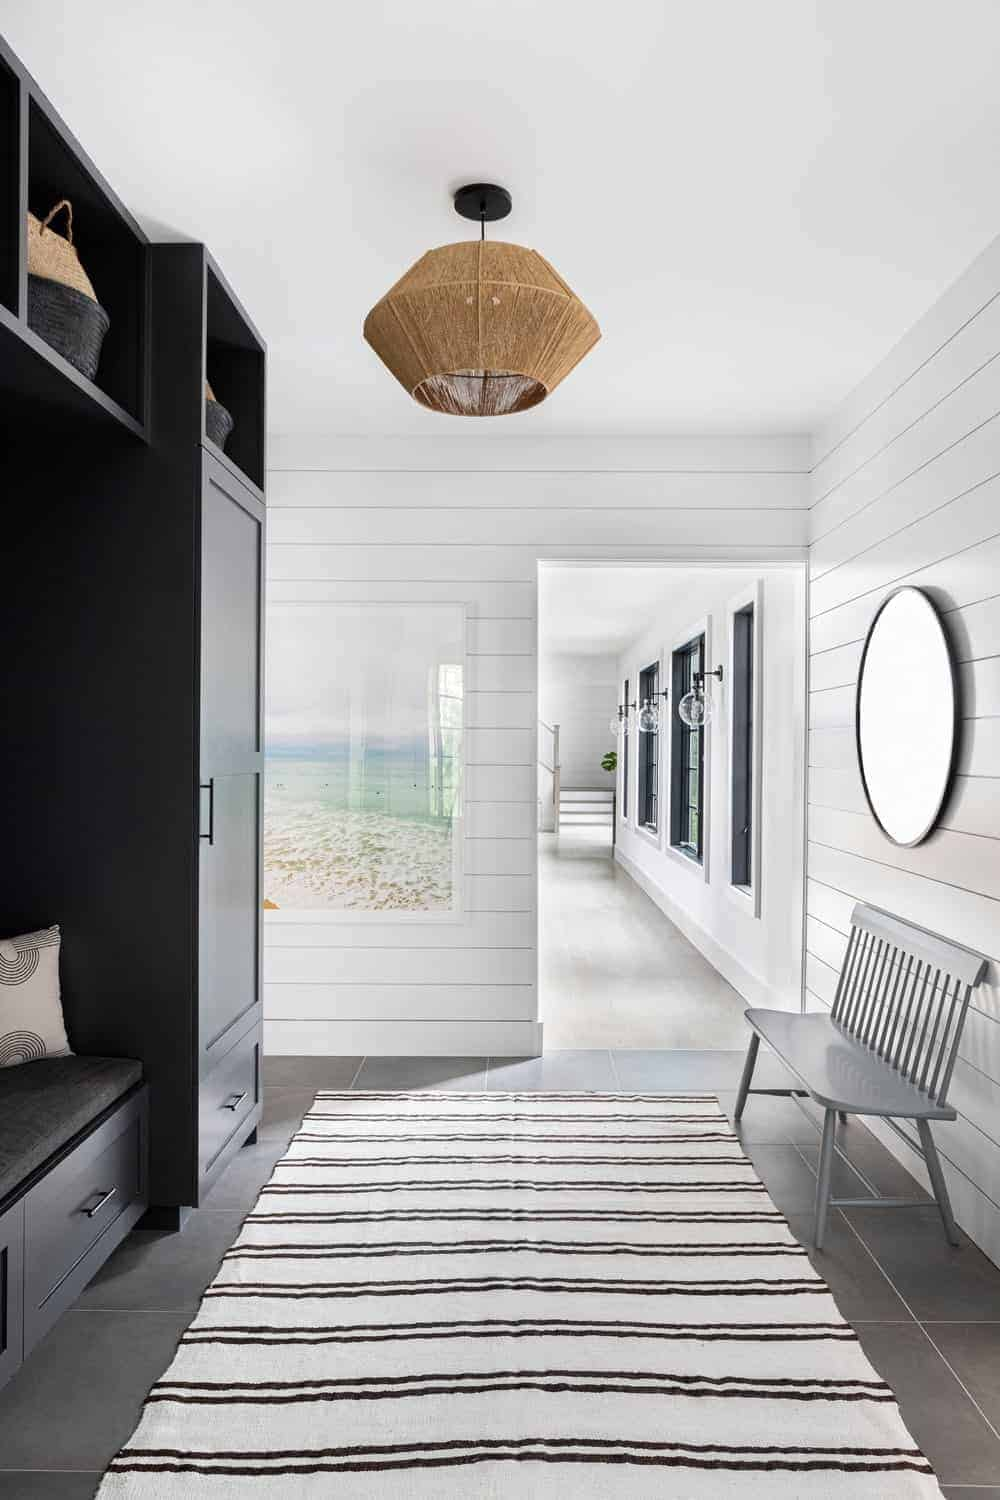 The white ceiling of this Farmhouse-style foyer is adorned with a pendant light that has a woven basket hood that provides a rustic element to the dark wooden mudroom on the left side with a cushioned seat. Opposite this is a light gray wooden bench against the white plank wall.